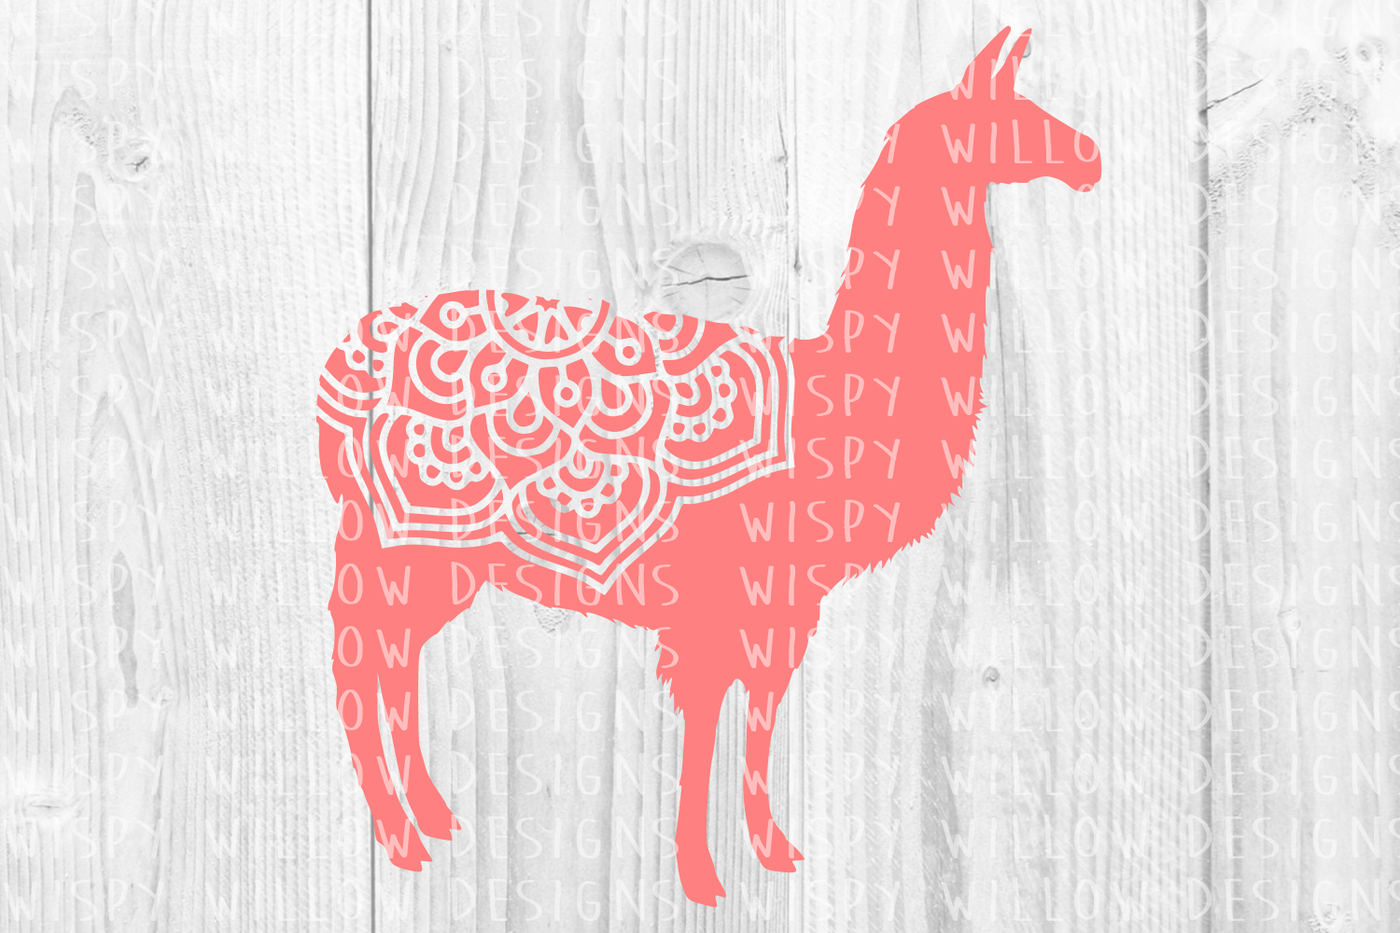 Llama Mandala Svg Dxf Eps Png Jpg Pdf By Wispy Willow Designs